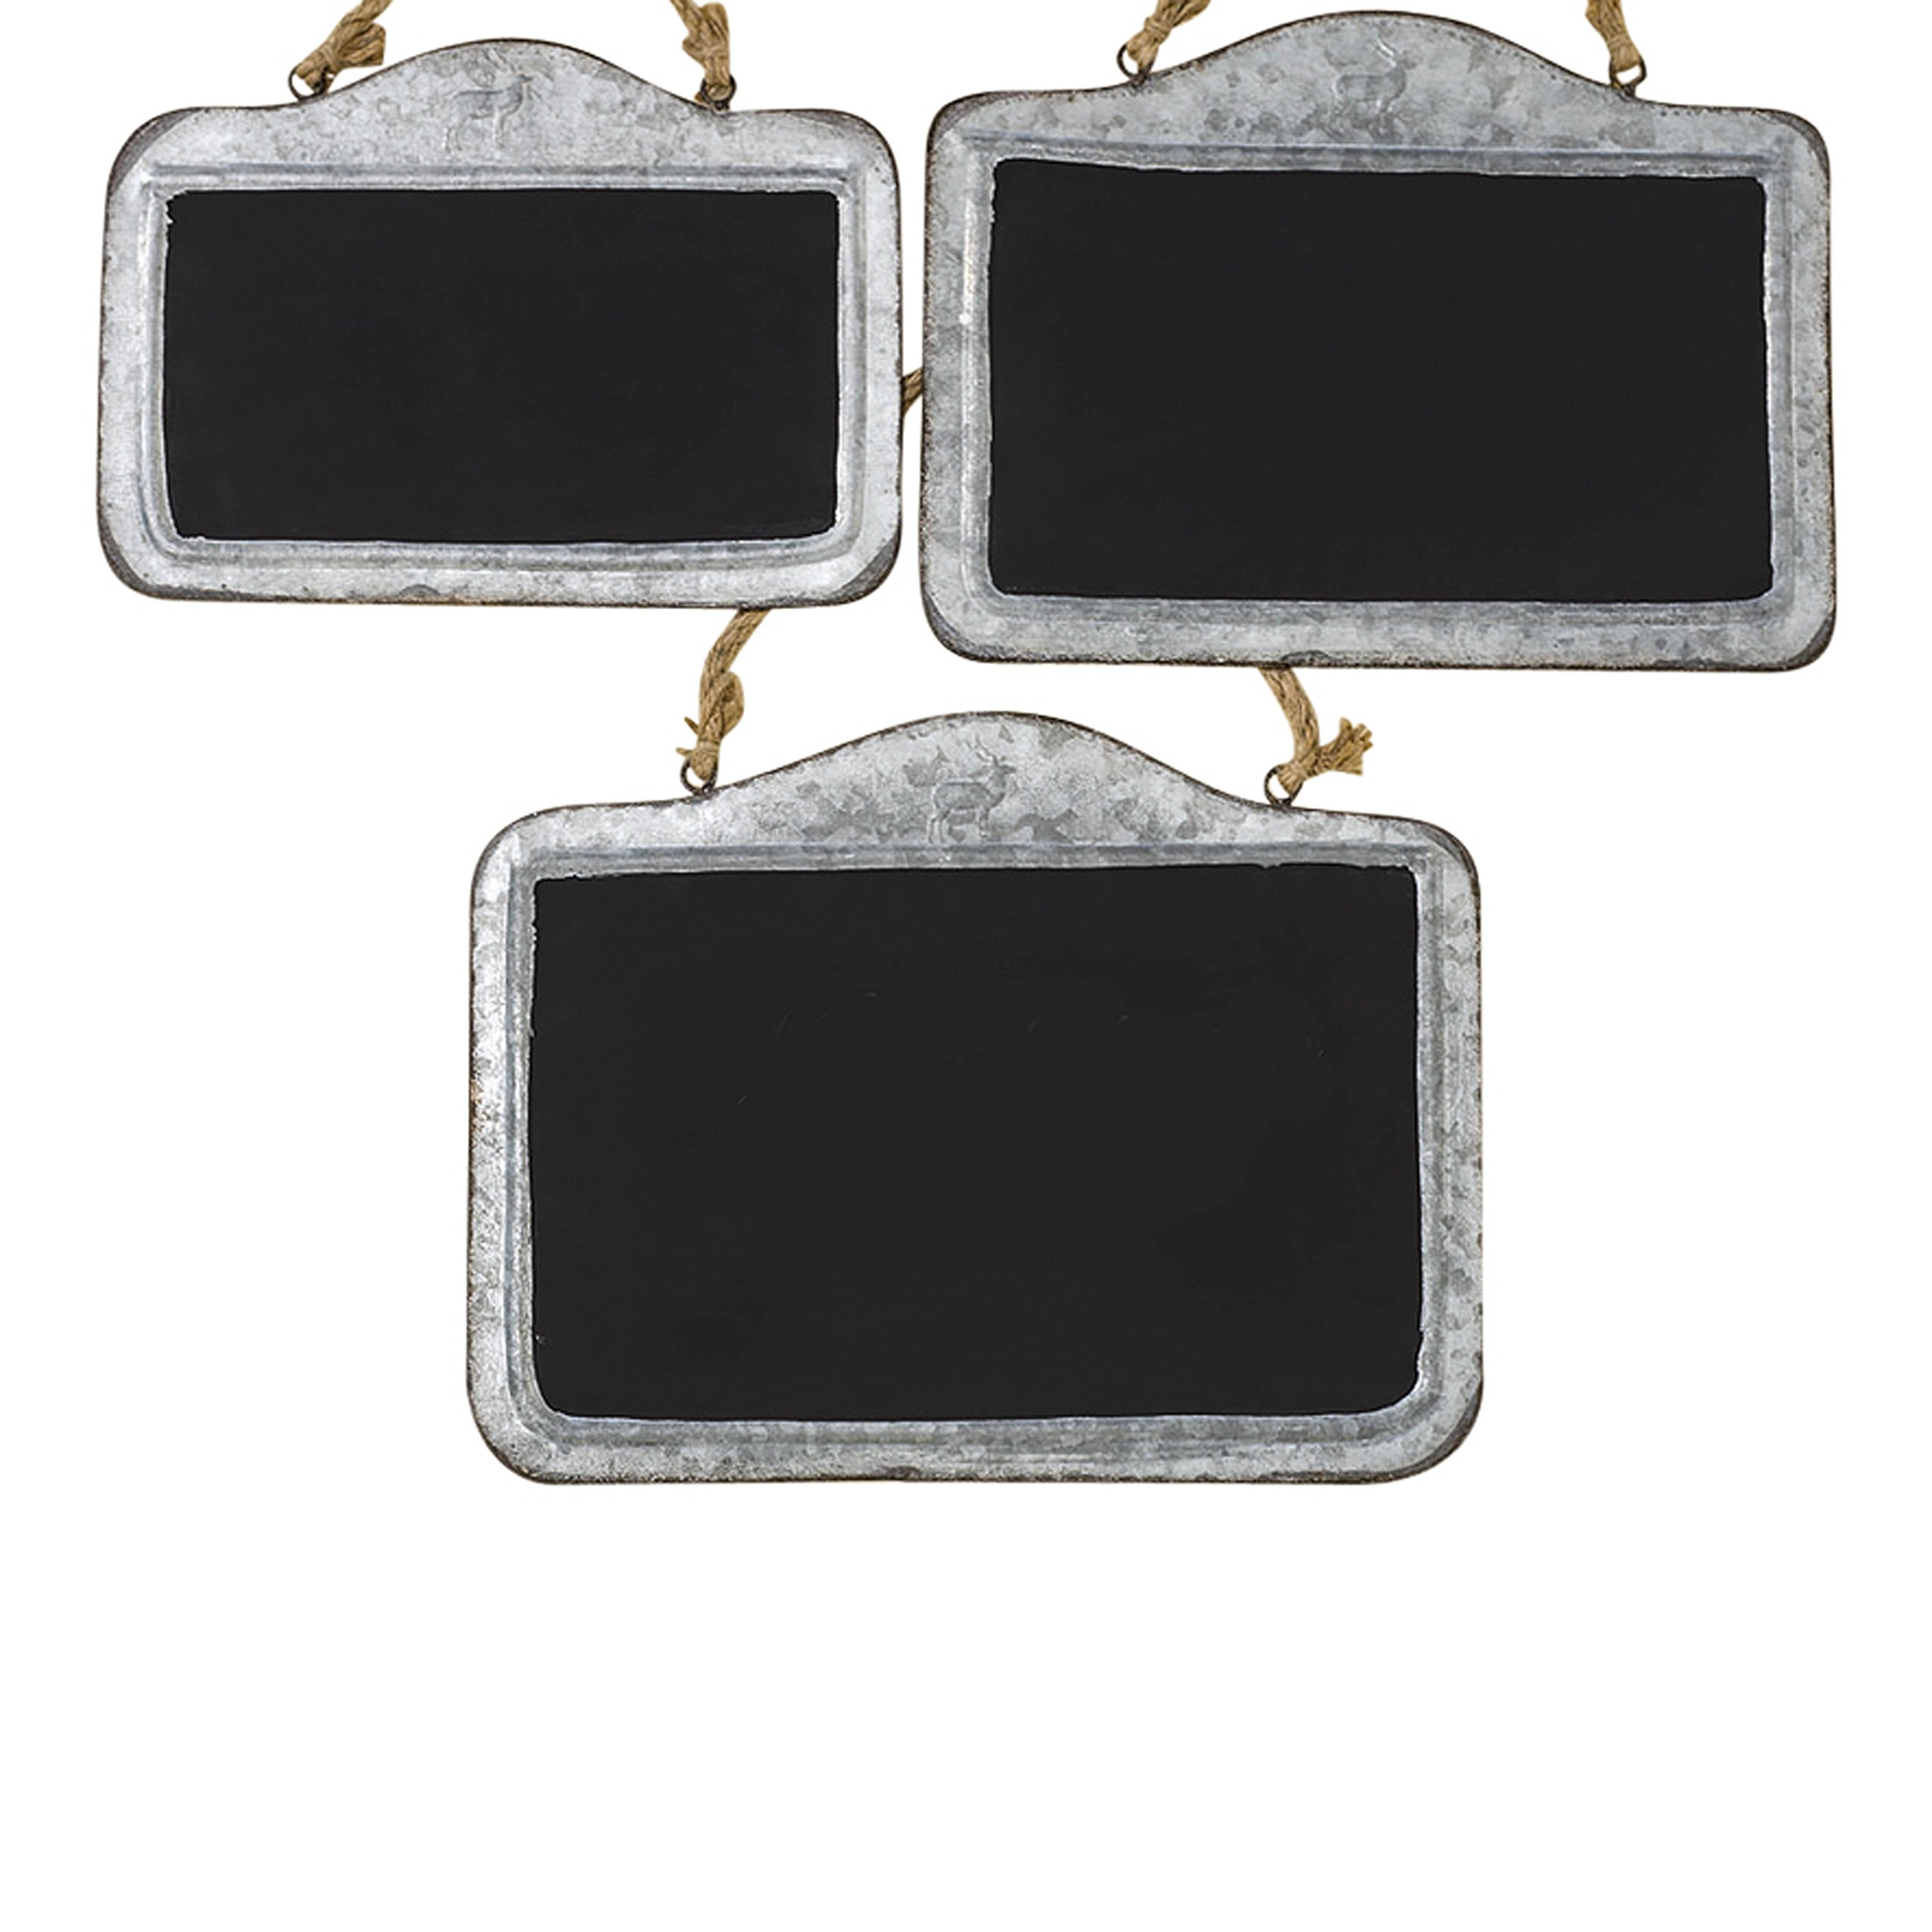 Whole House Worlds The Farmers Market Crested Deer Chalkboards, Set of 3, Galvanized Weathered Metal Frame, Knotted Twine Hanger, 12,13, and 15 4/5 Long Inches